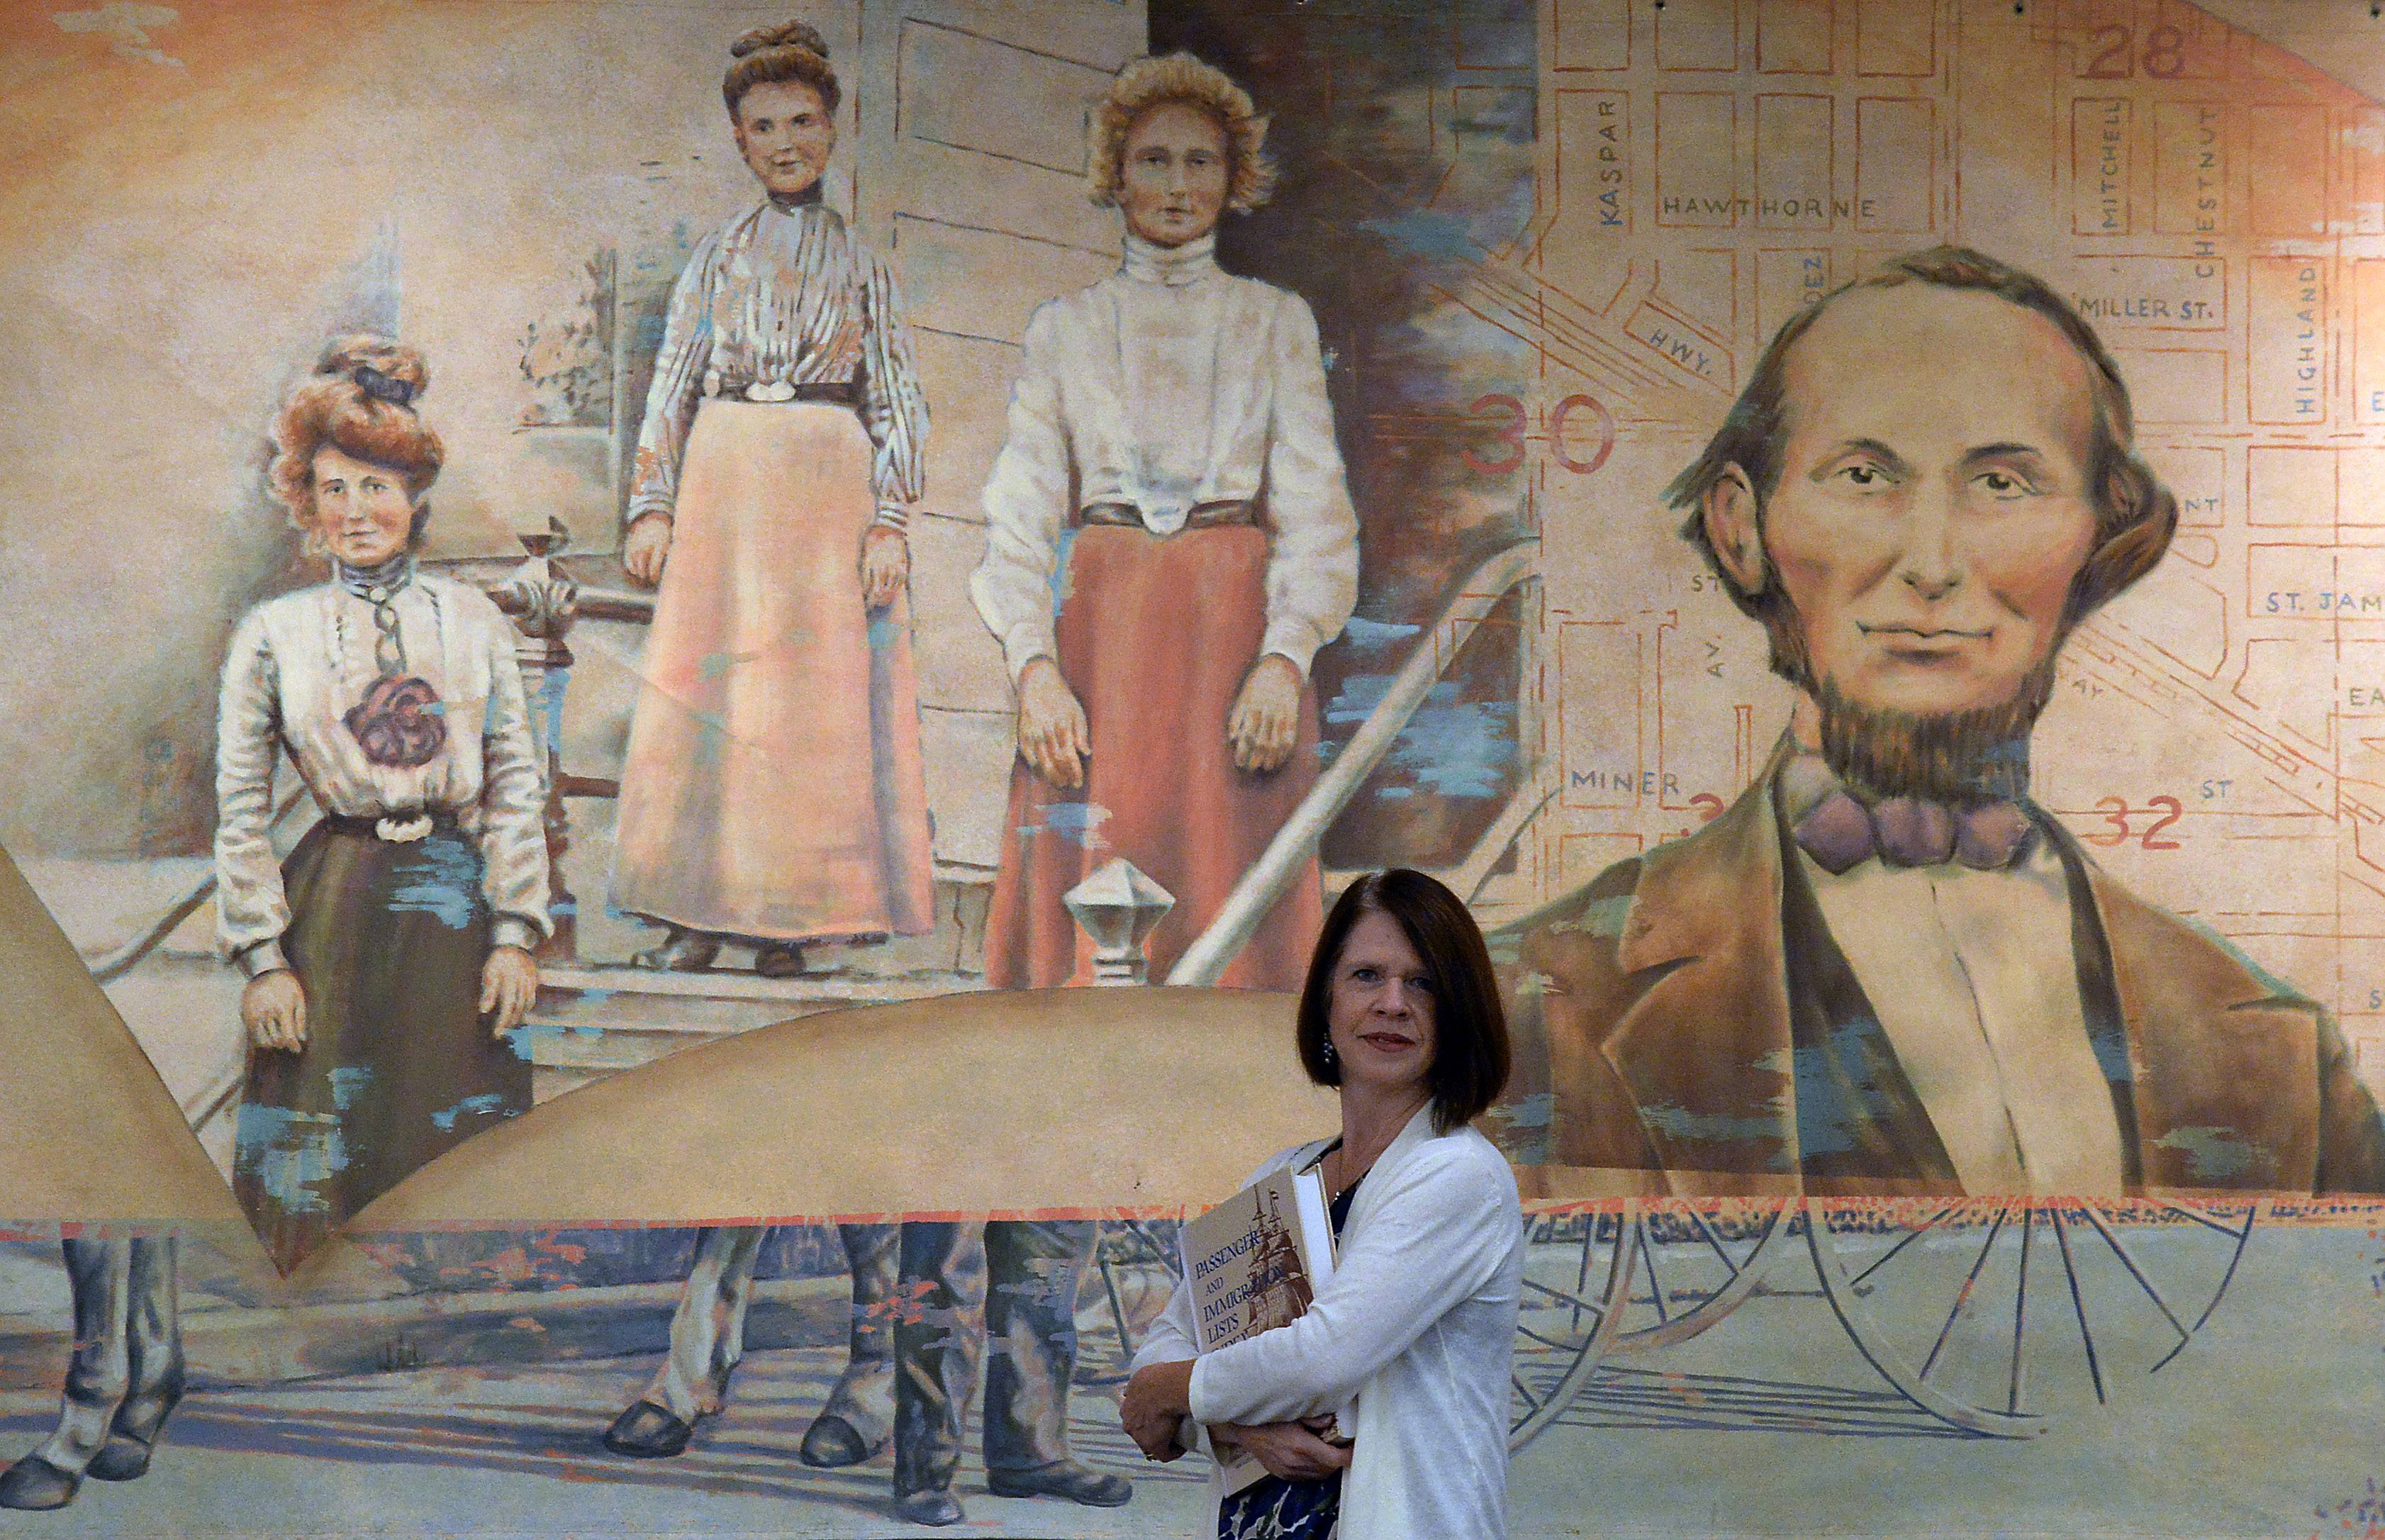 Teresa Steinkamp McMillin, a certified genealogist who specializes in German ancestry, as well as Chicago and Midwestern searches for clients across the country, stands in front of a mural representing the past of Arlington Heights at the Arlington Heights Memorial Library.